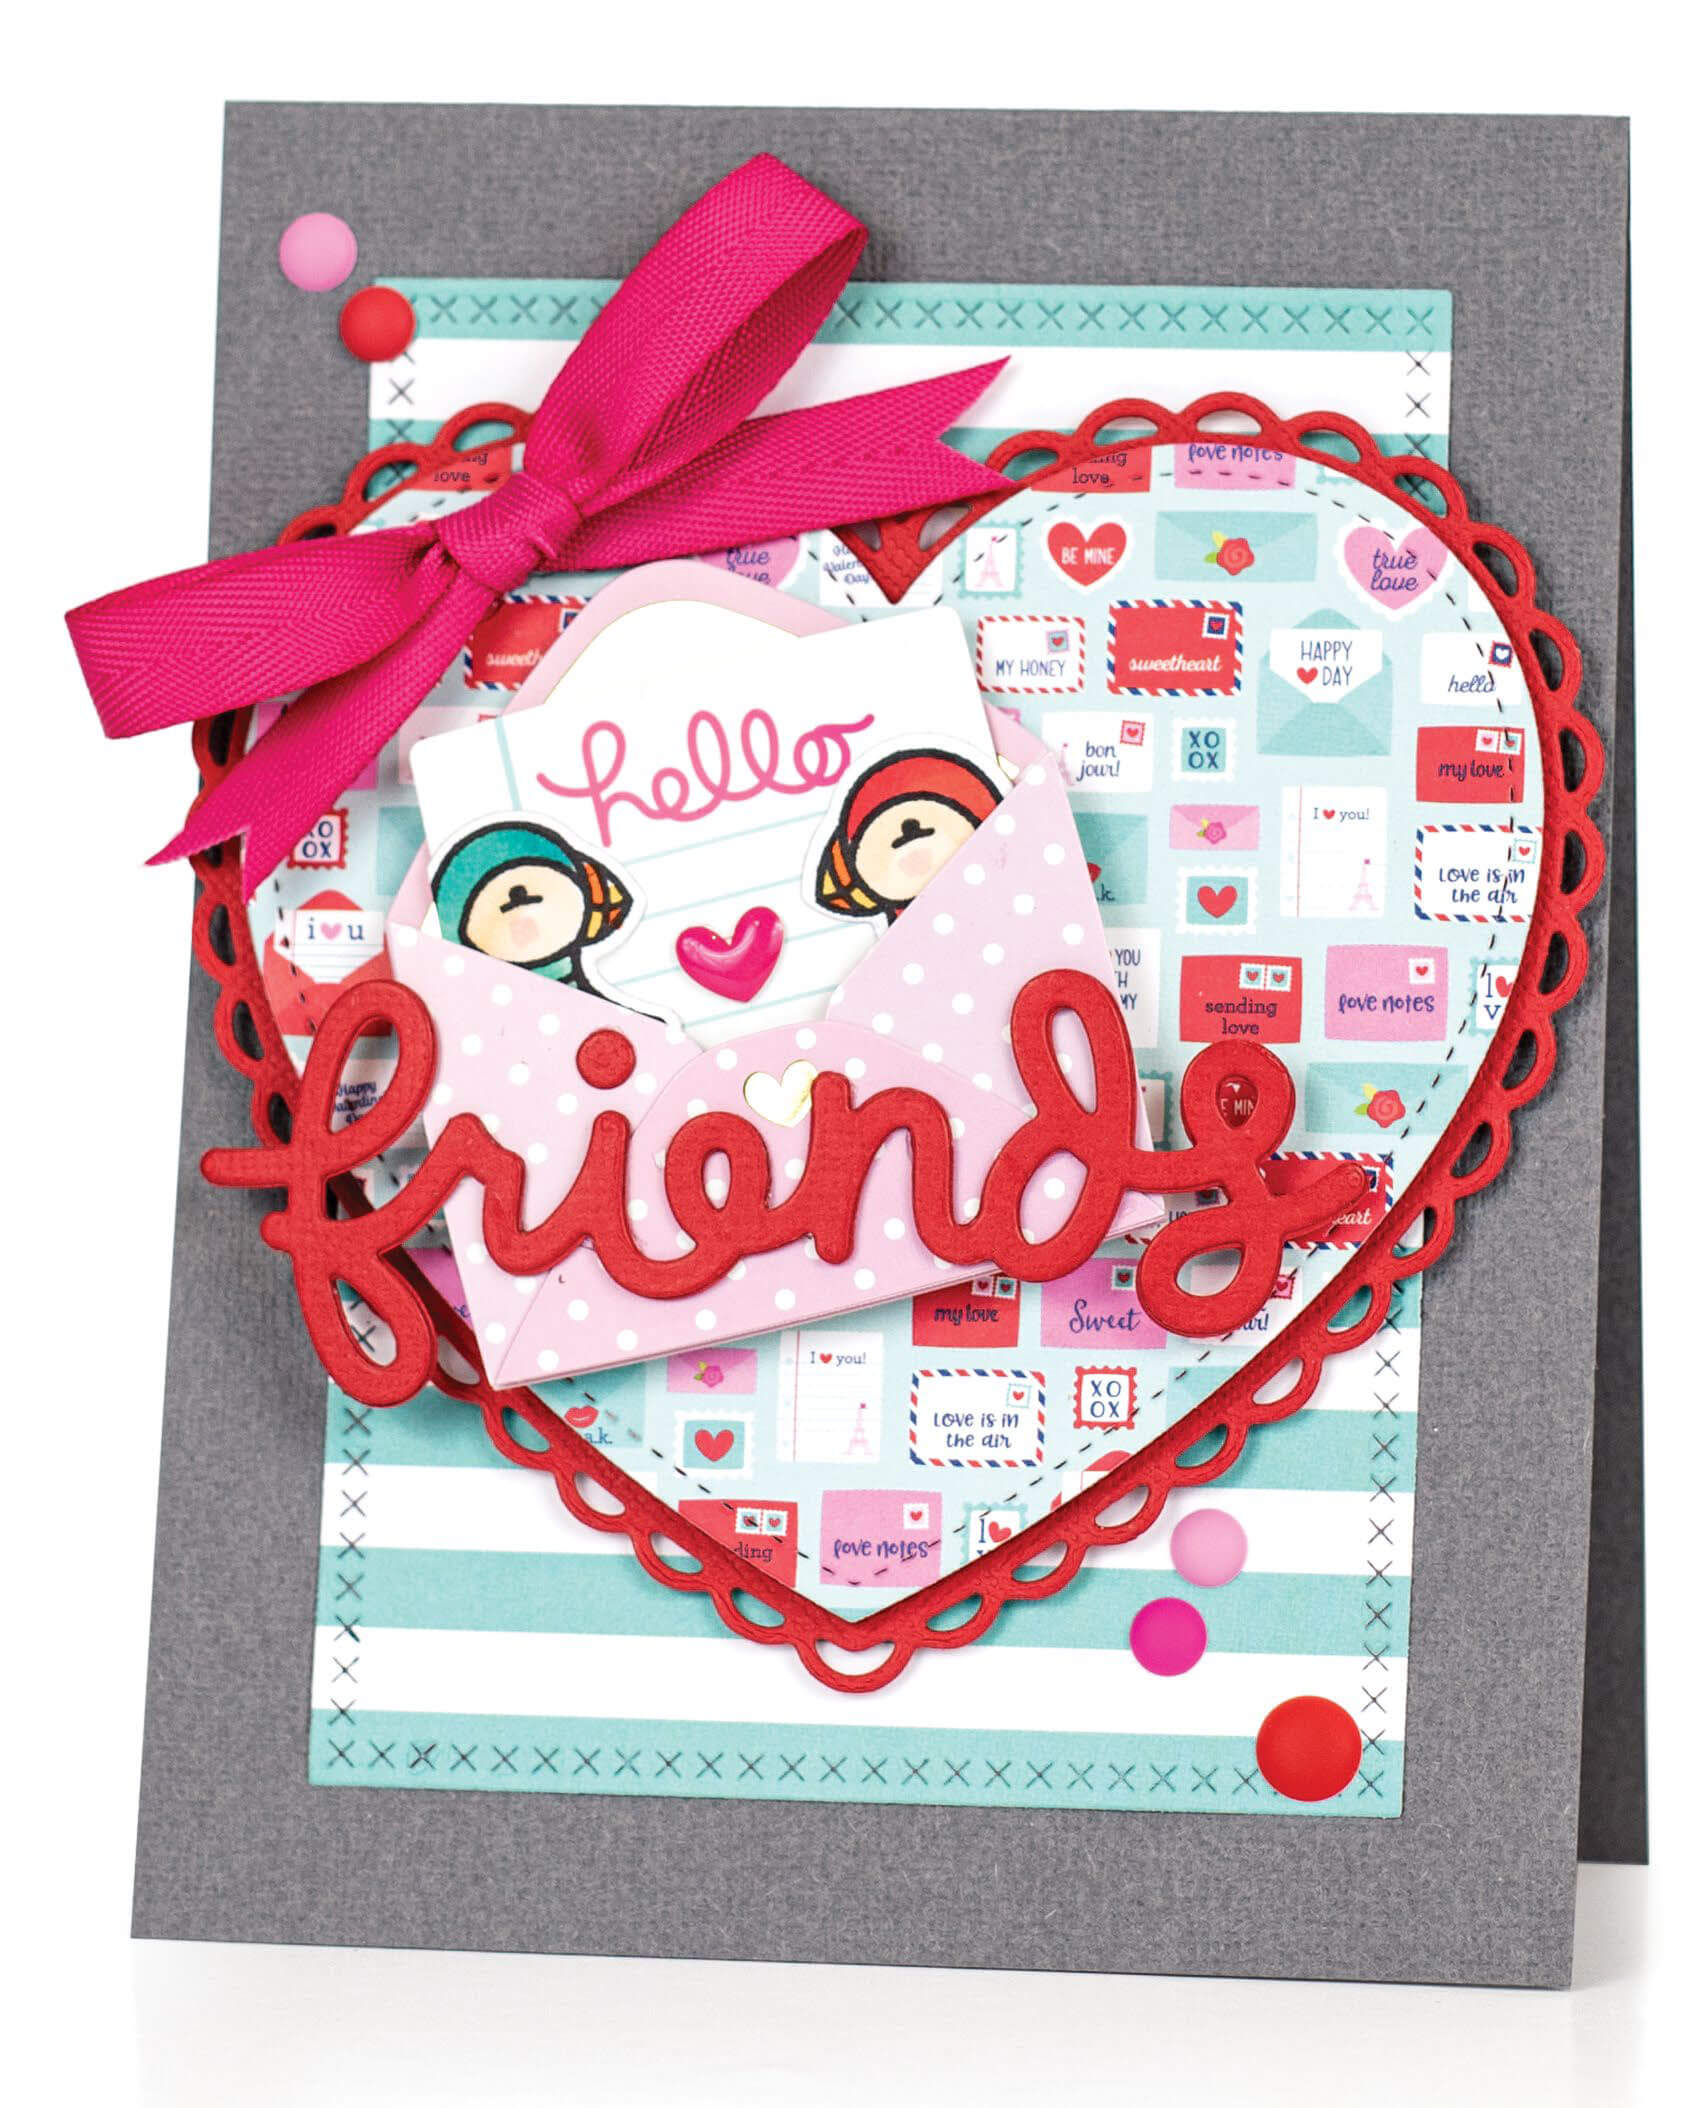 Scrapbook & Cards Today - Winter 2019 - Friends card by Latisha Yoast